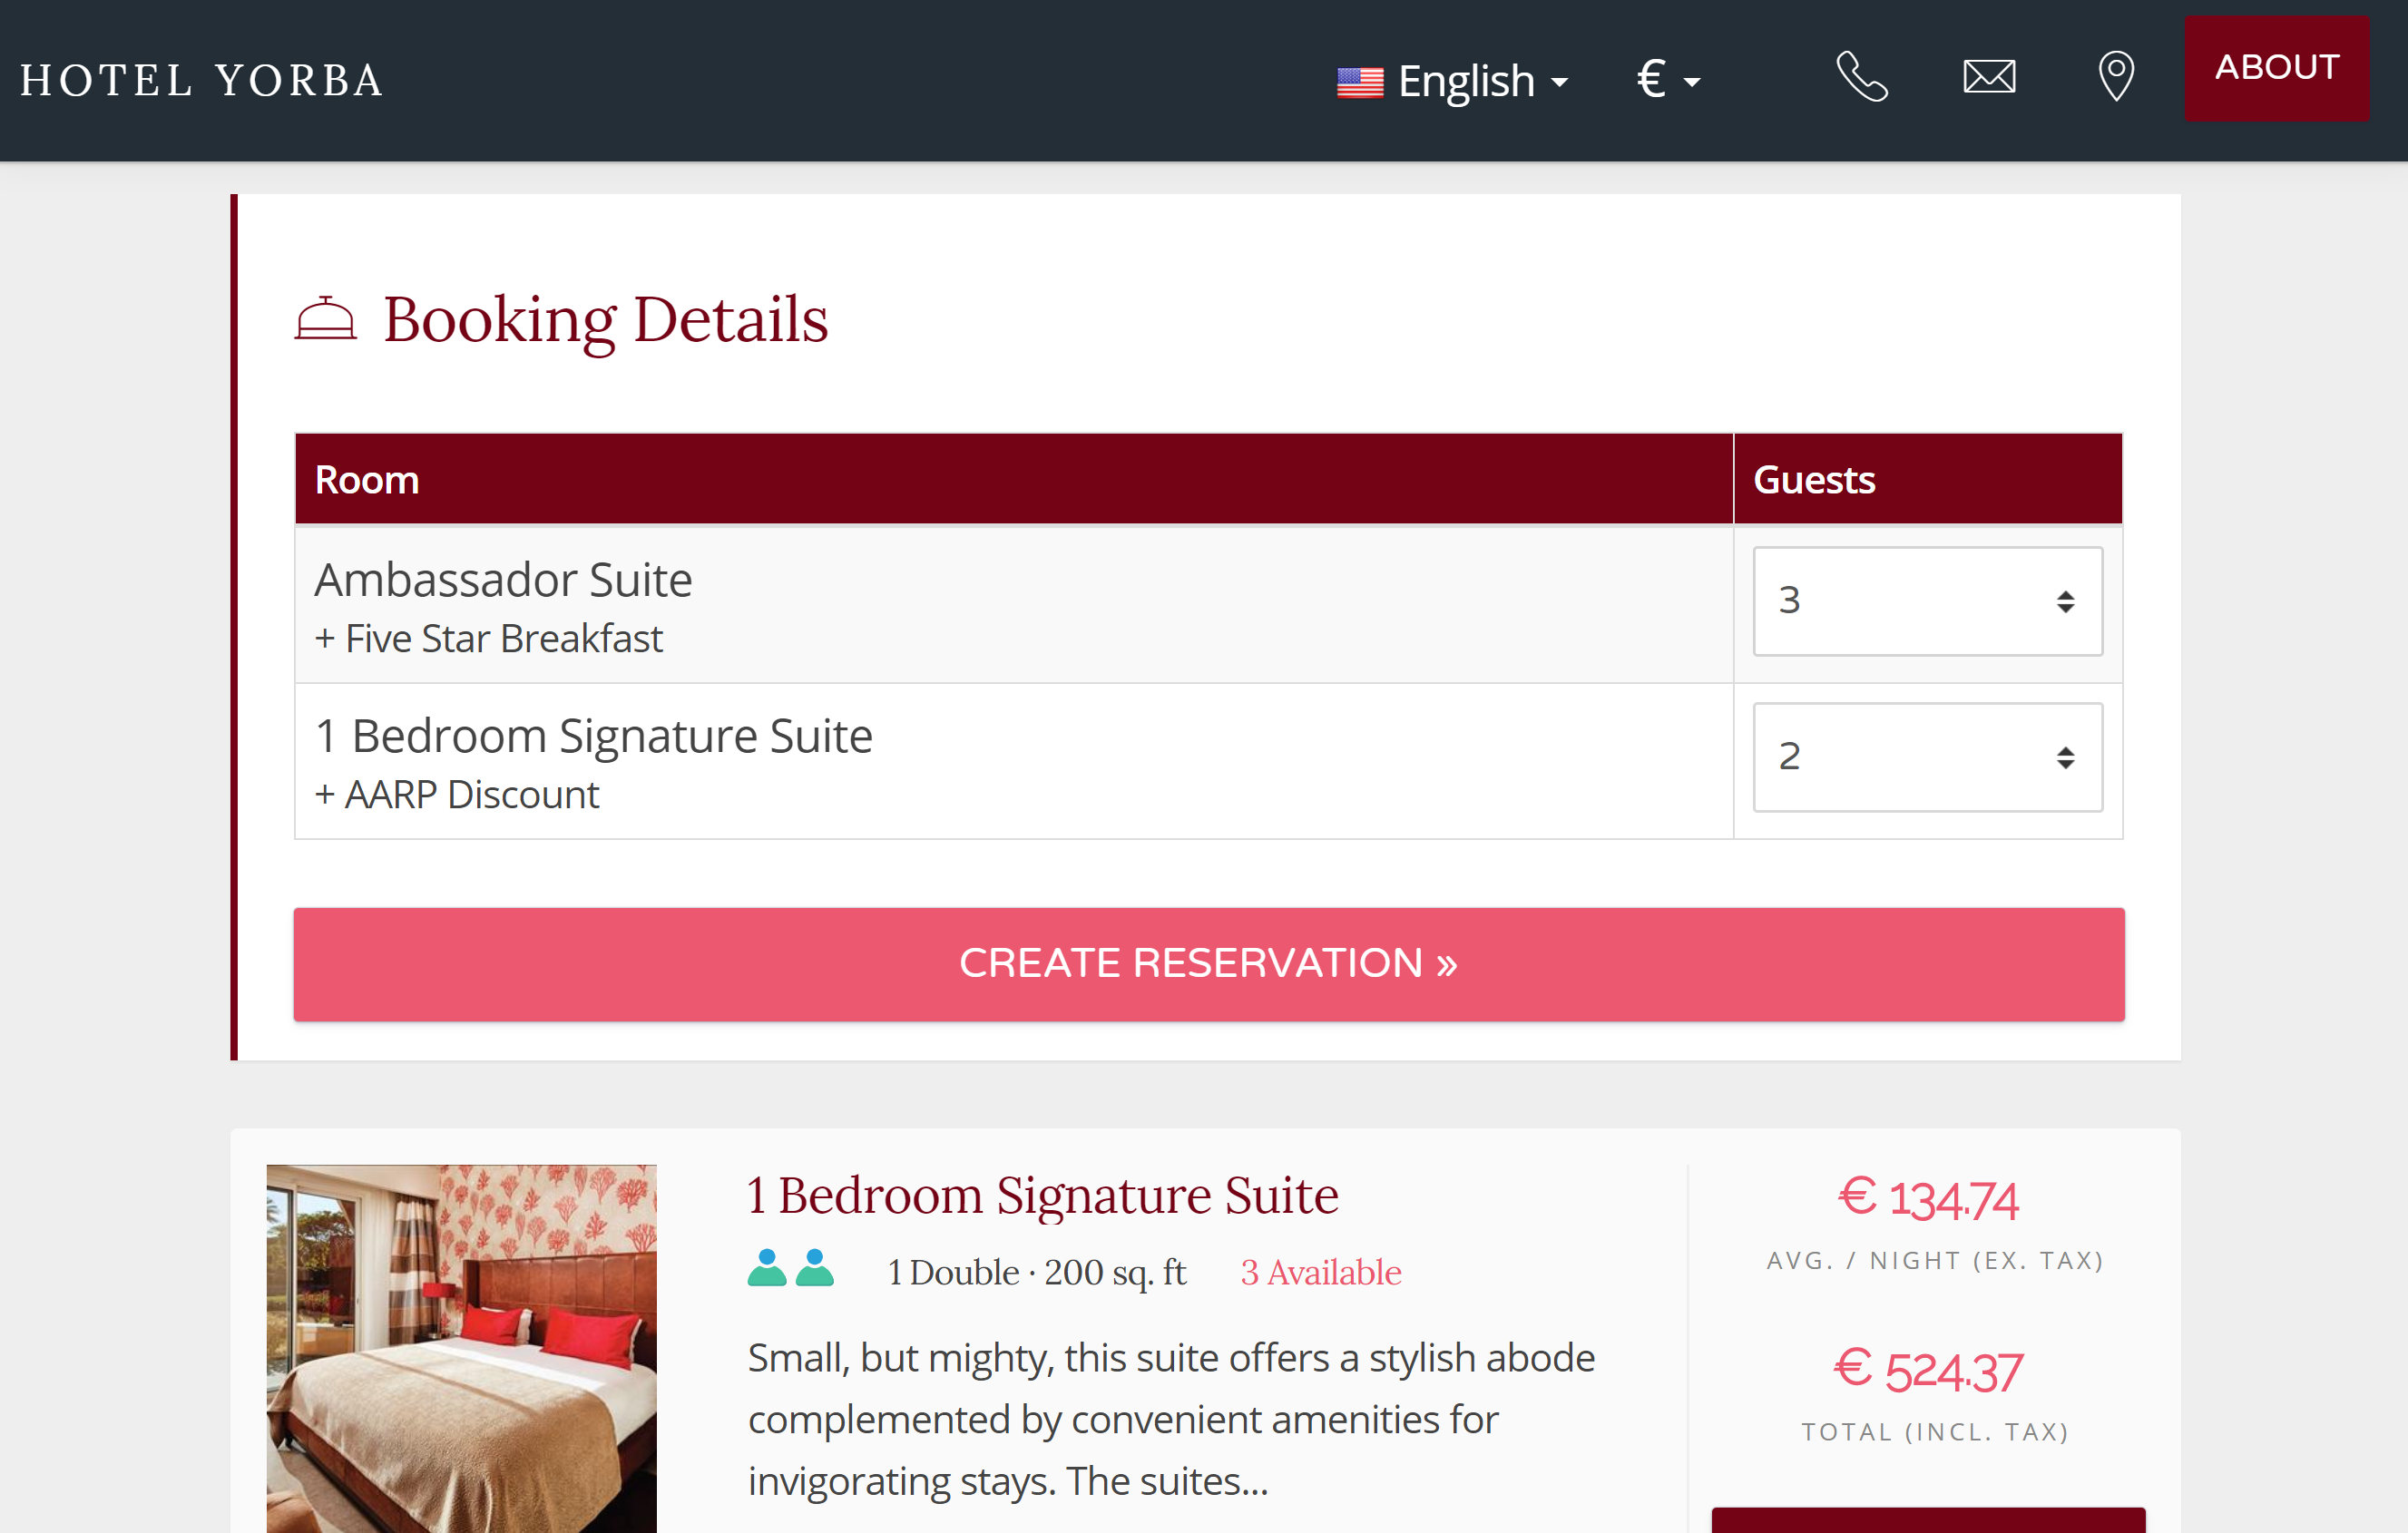 Booking Engine Guests can add all the rooms they require, specify how many guests will stay in each room, then check-out all in one step. Their booking info is condensed for easy reading but can be expanded to show all the room and rate pricing details on check-out.